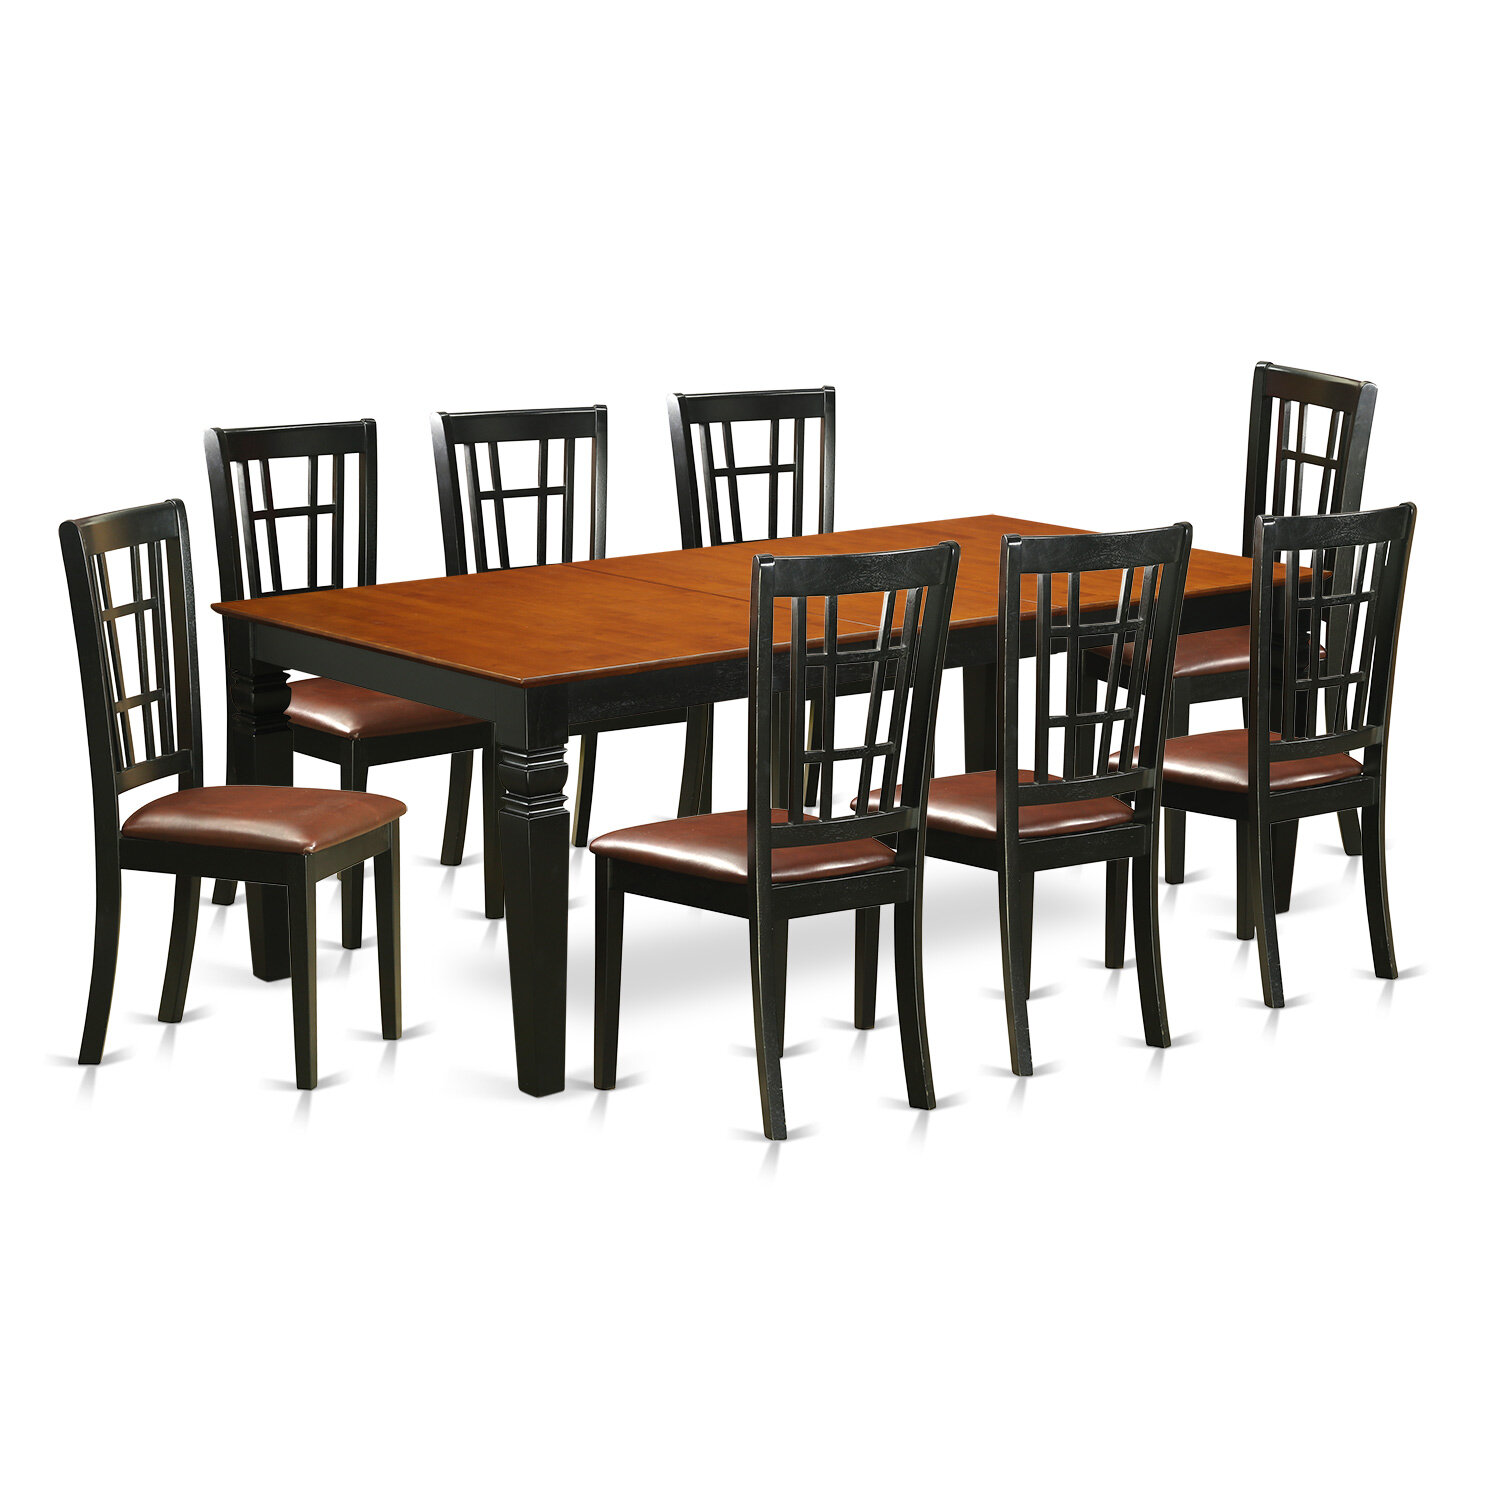 Darby Home Co Beesley 9 Piece Blackcherry Wood Dining Set Wayfair